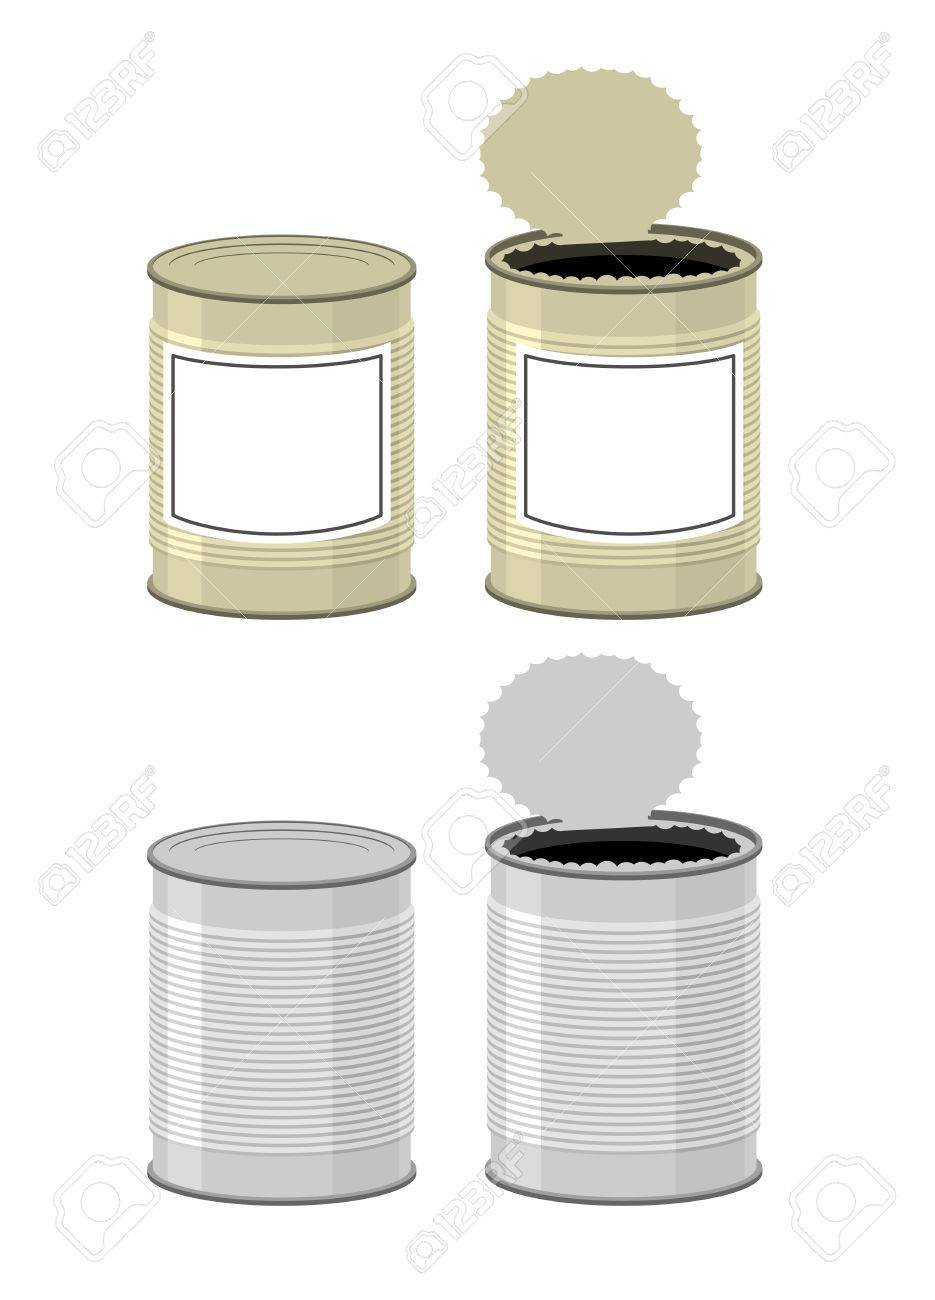 Template Tin with design. Open a tin can. Tin on a white background. Vector illustration - 44010140